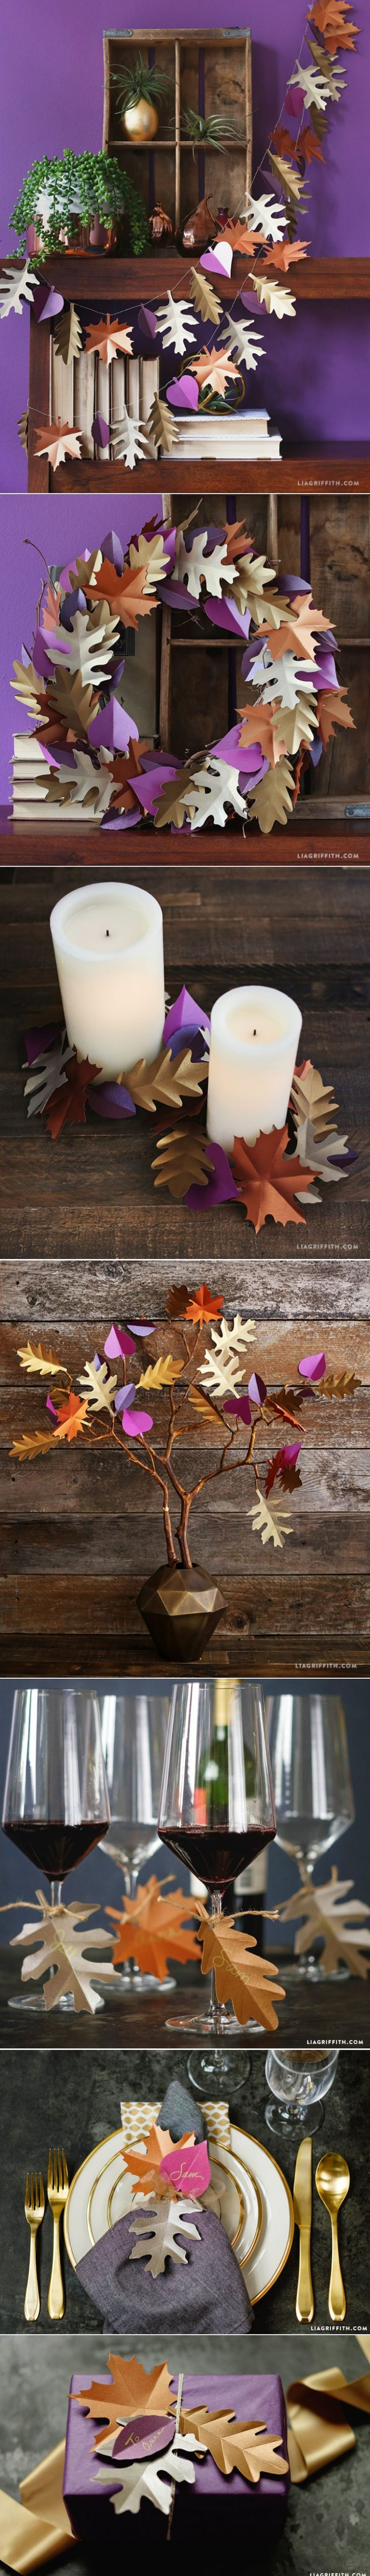 #falldecor #paperart #paperleaves #paperflowers #diydecor #decorateforfall www.LiaGriffith.com - created via https://pinthemall.net